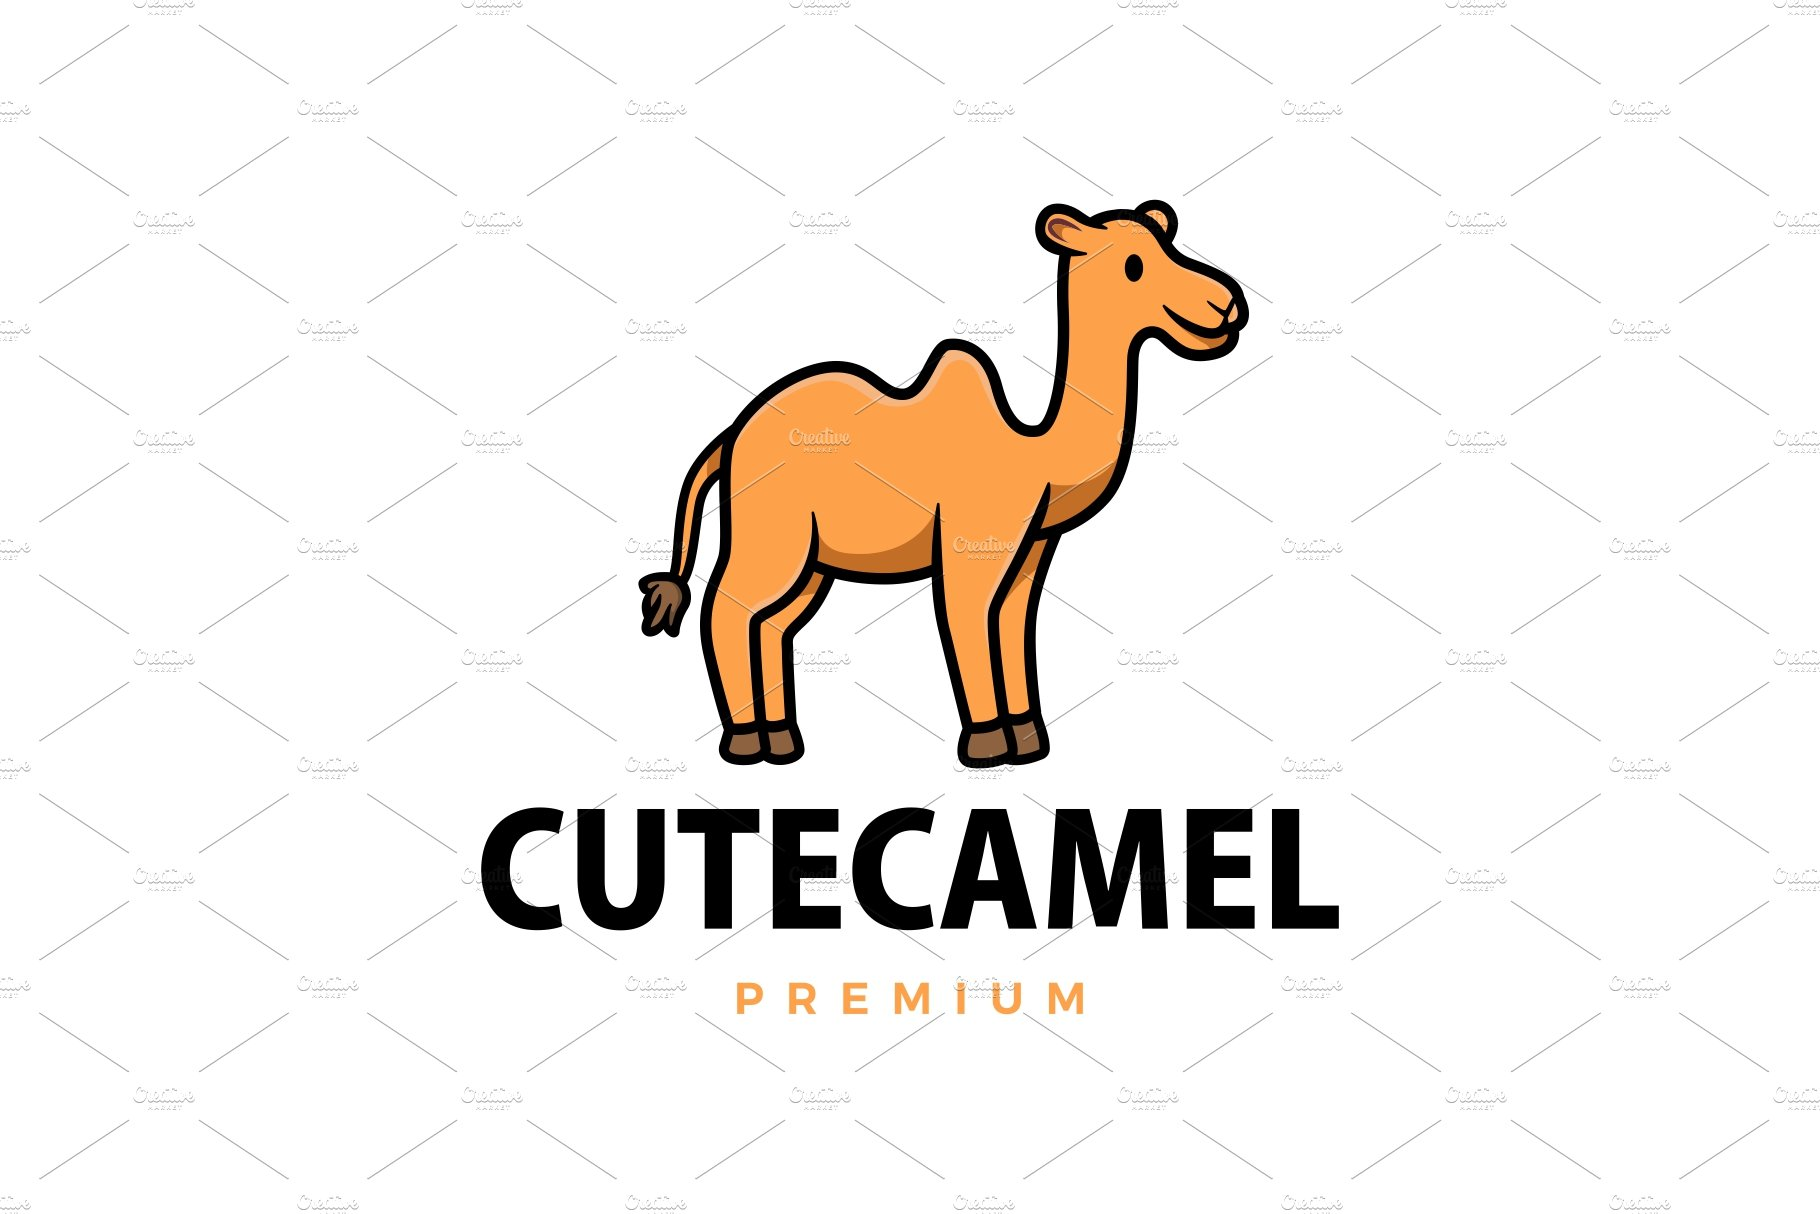 Cute Camel Cartoon Logo Vector Icon Creative Illustrator Templates Creative Market